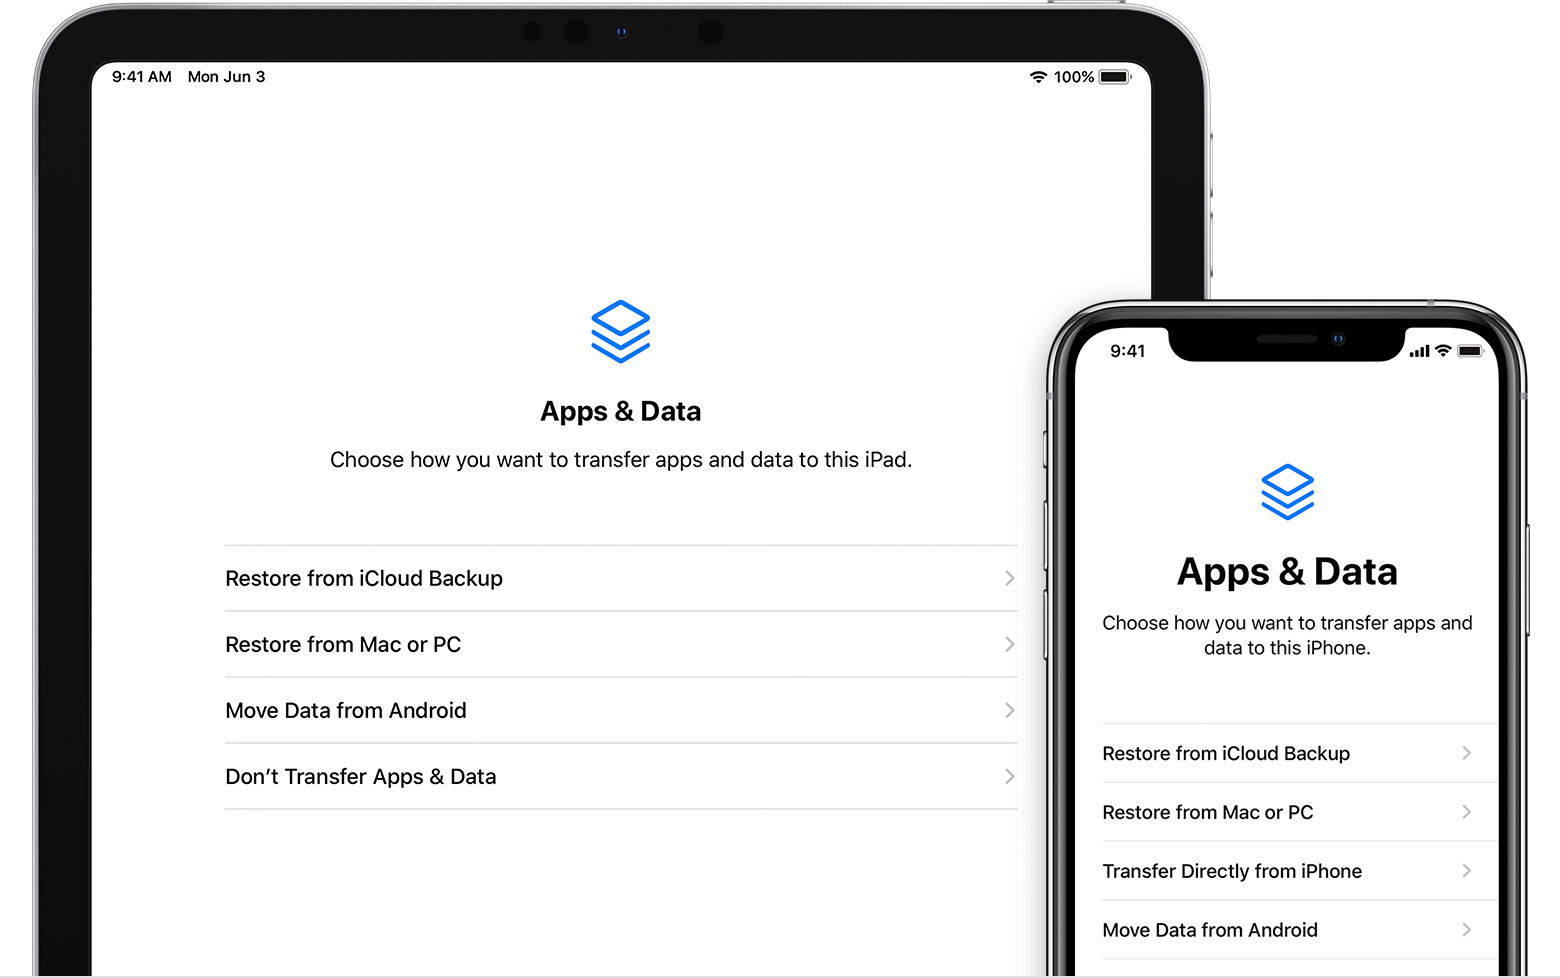 Informazioni Sui Backup Per Iphone Ipad E Ipod Touch